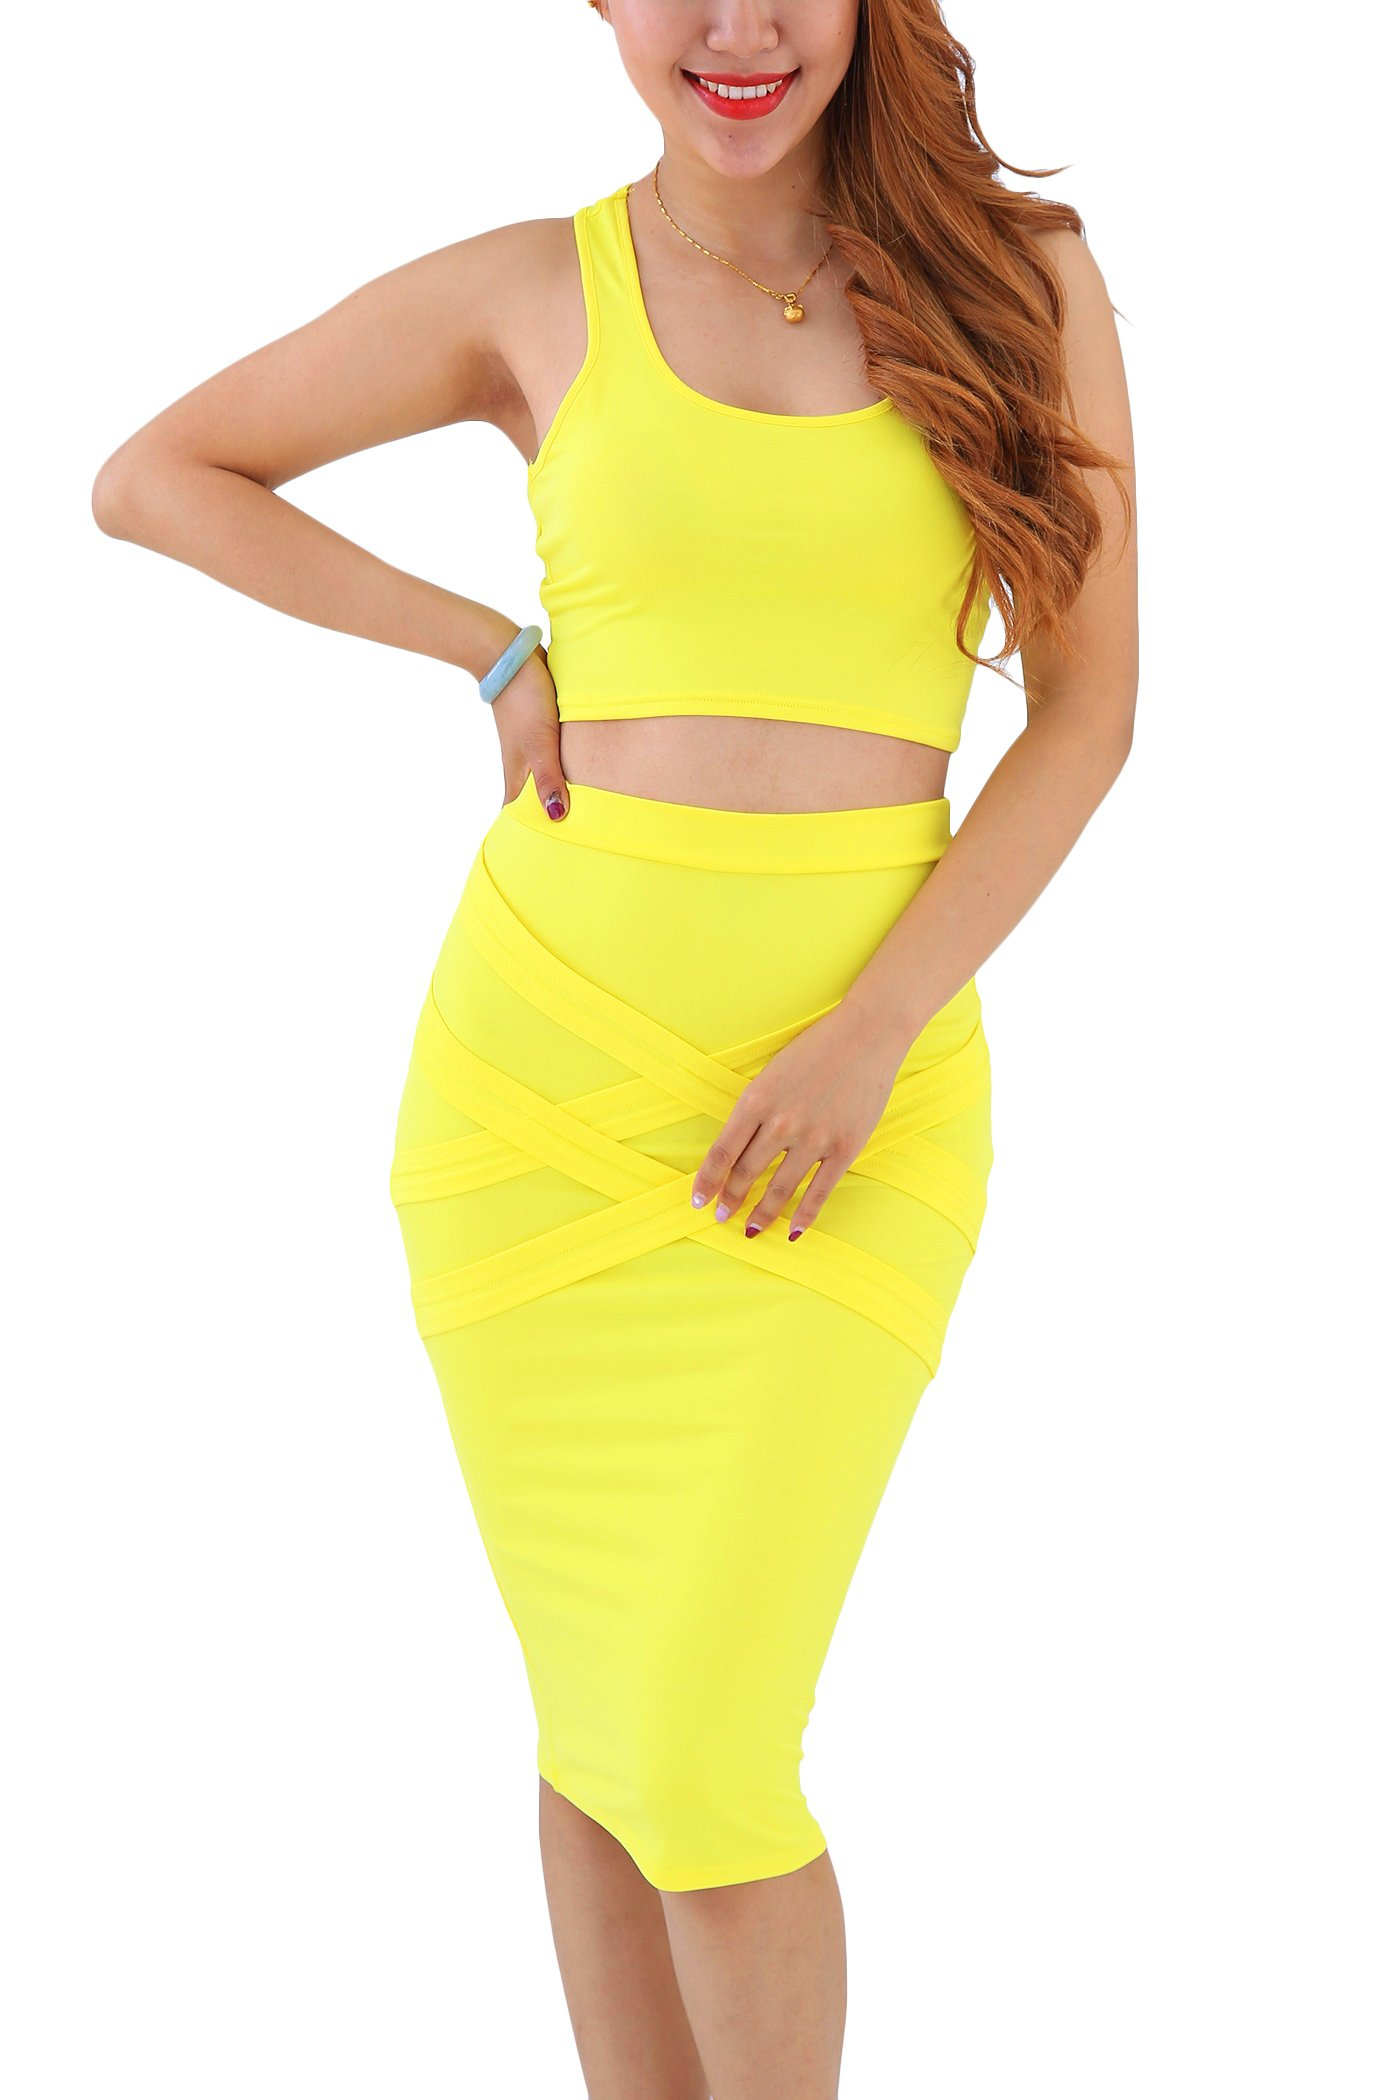 25e613a94421 YMING Women's Bodycon Club Dress Crop Top Outfits Bandage Sexy Dress Yellow  S